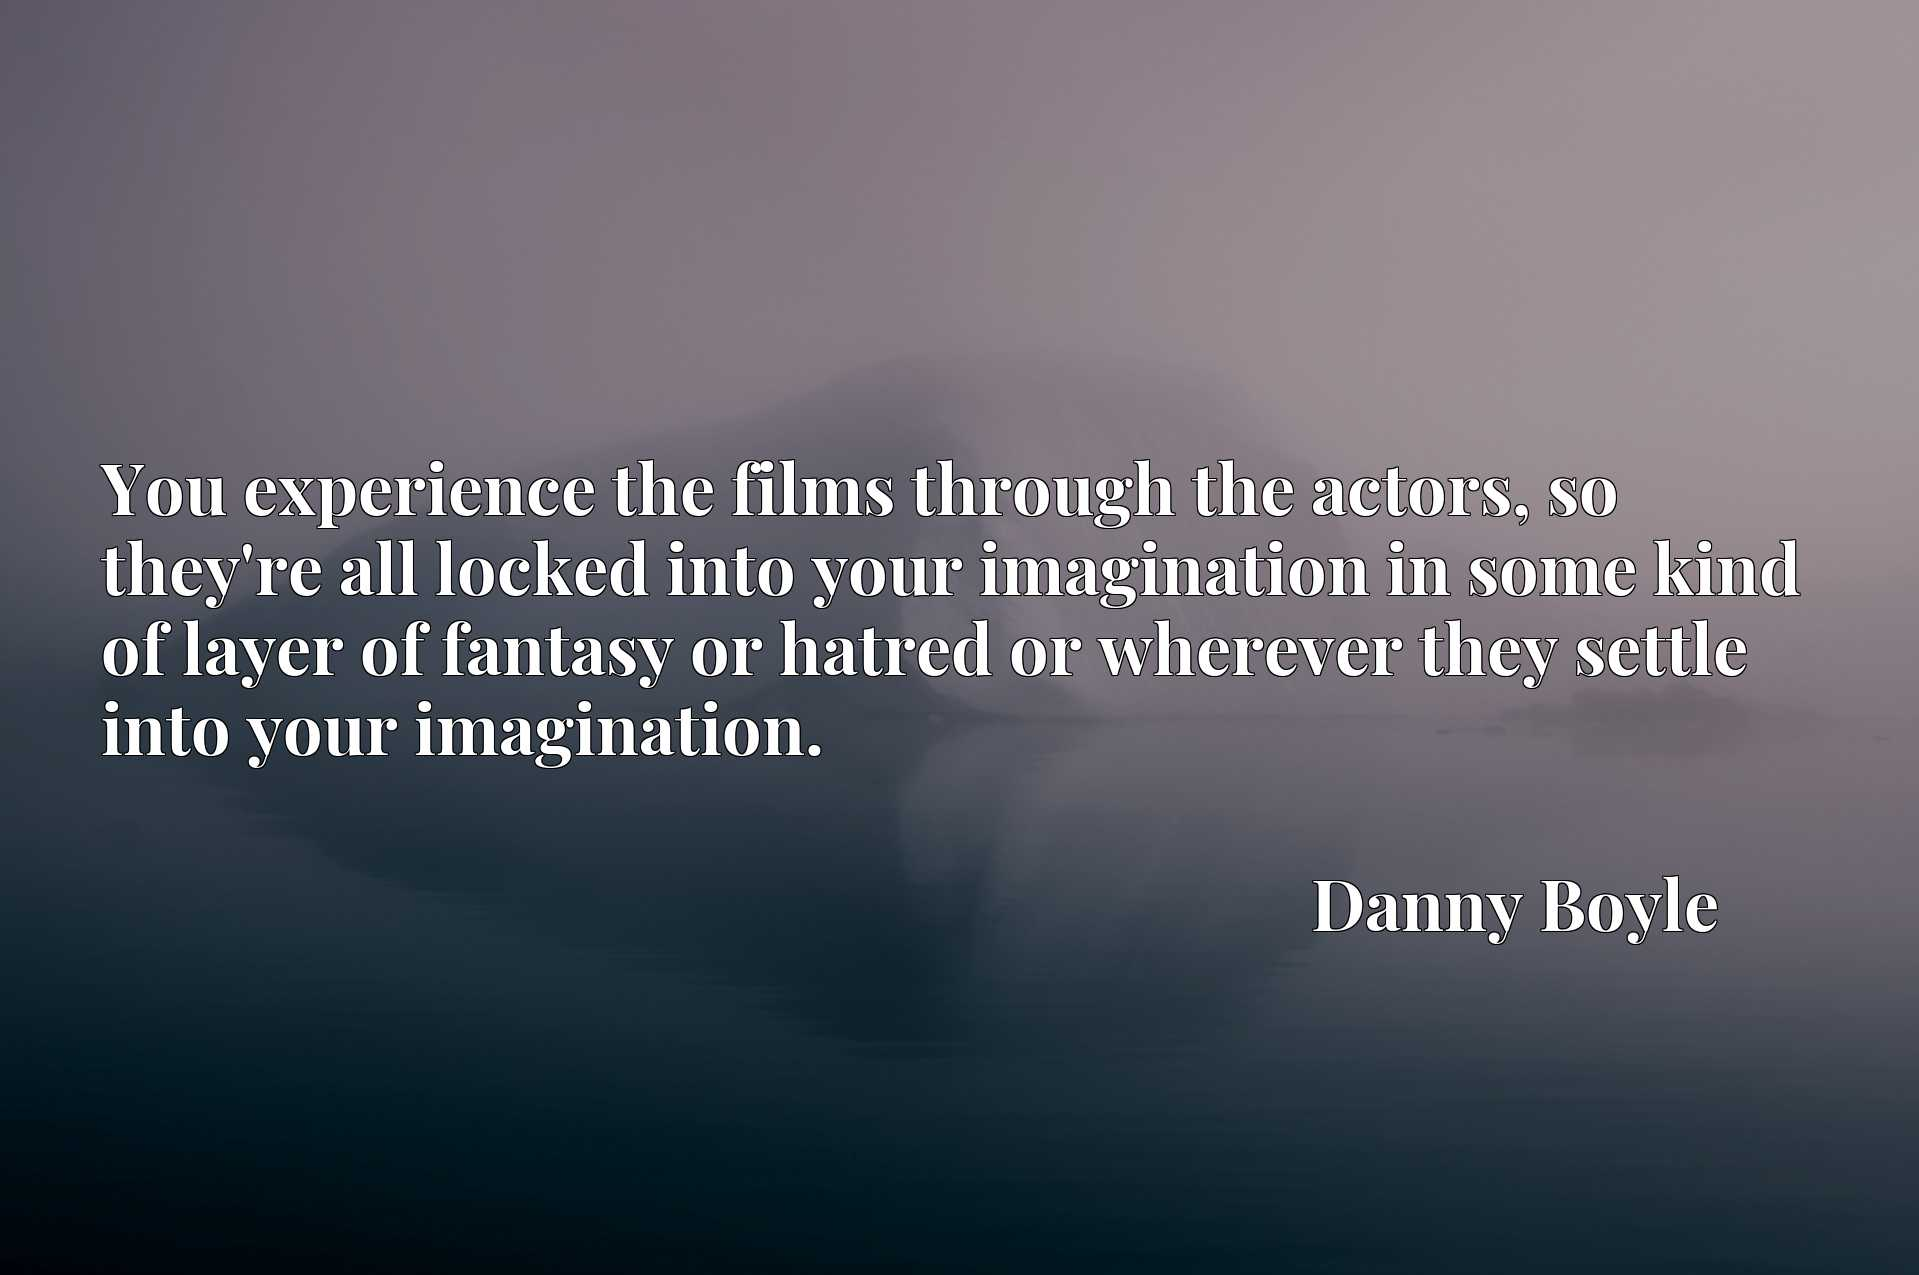 You experience the films through the actors, so they're all locked into your imagination in some kind of layer of fantasy or hatred or wherever they settle into your imagination.